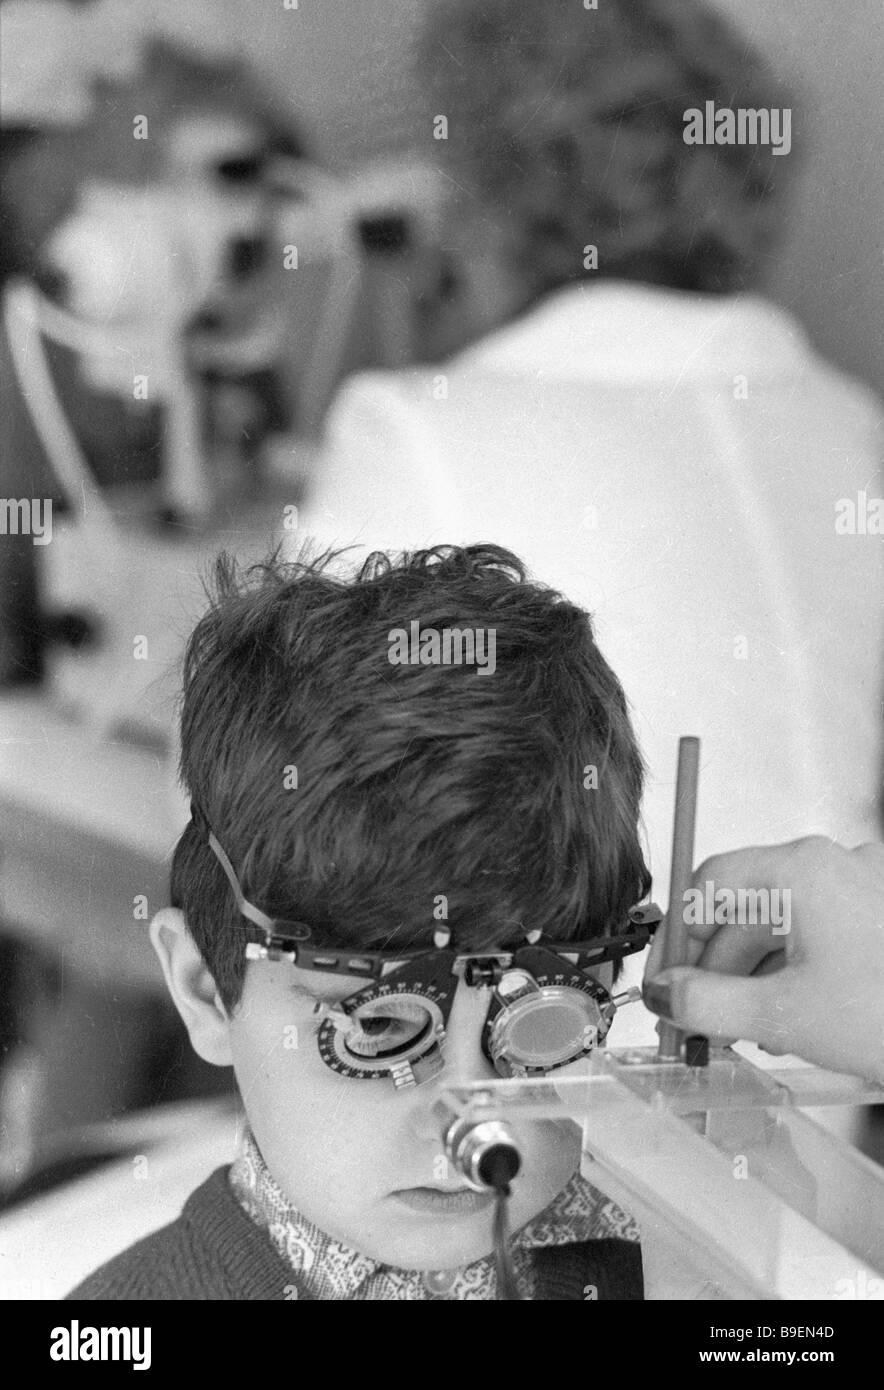 cf59a60144 A Helmholtz Ophthalmology Institute child patient has his eye examined with  an accommodometer - Stock Image